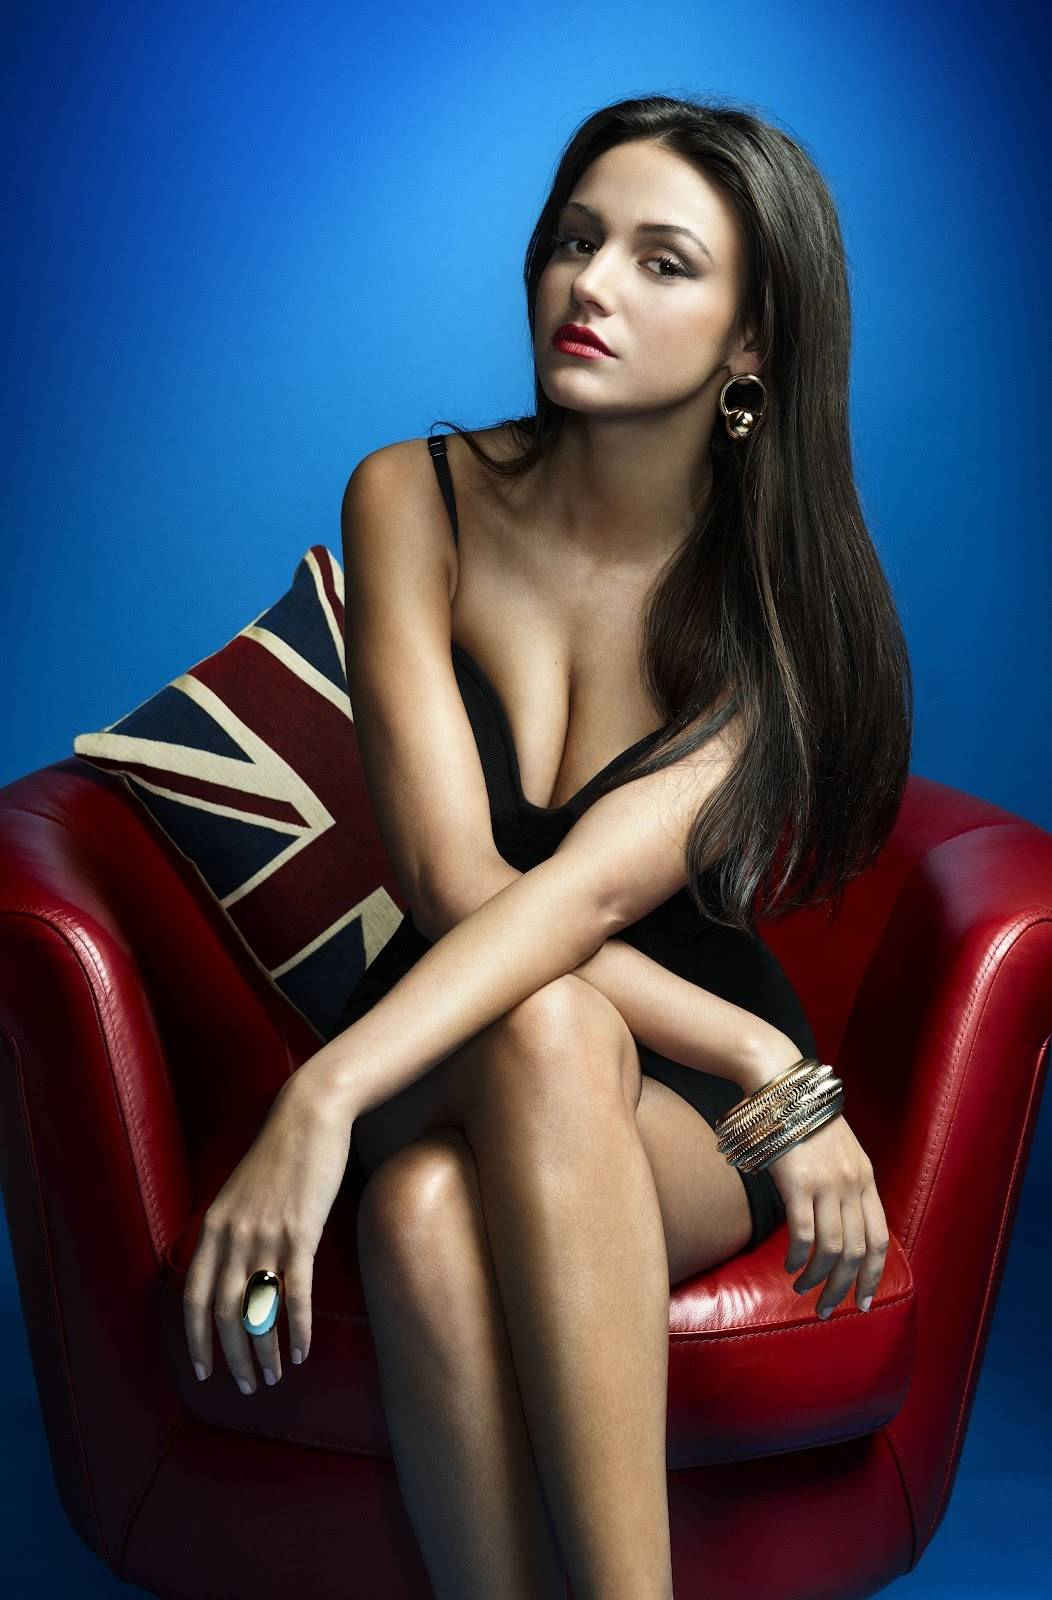 Michelle Keegan Hot Boobs